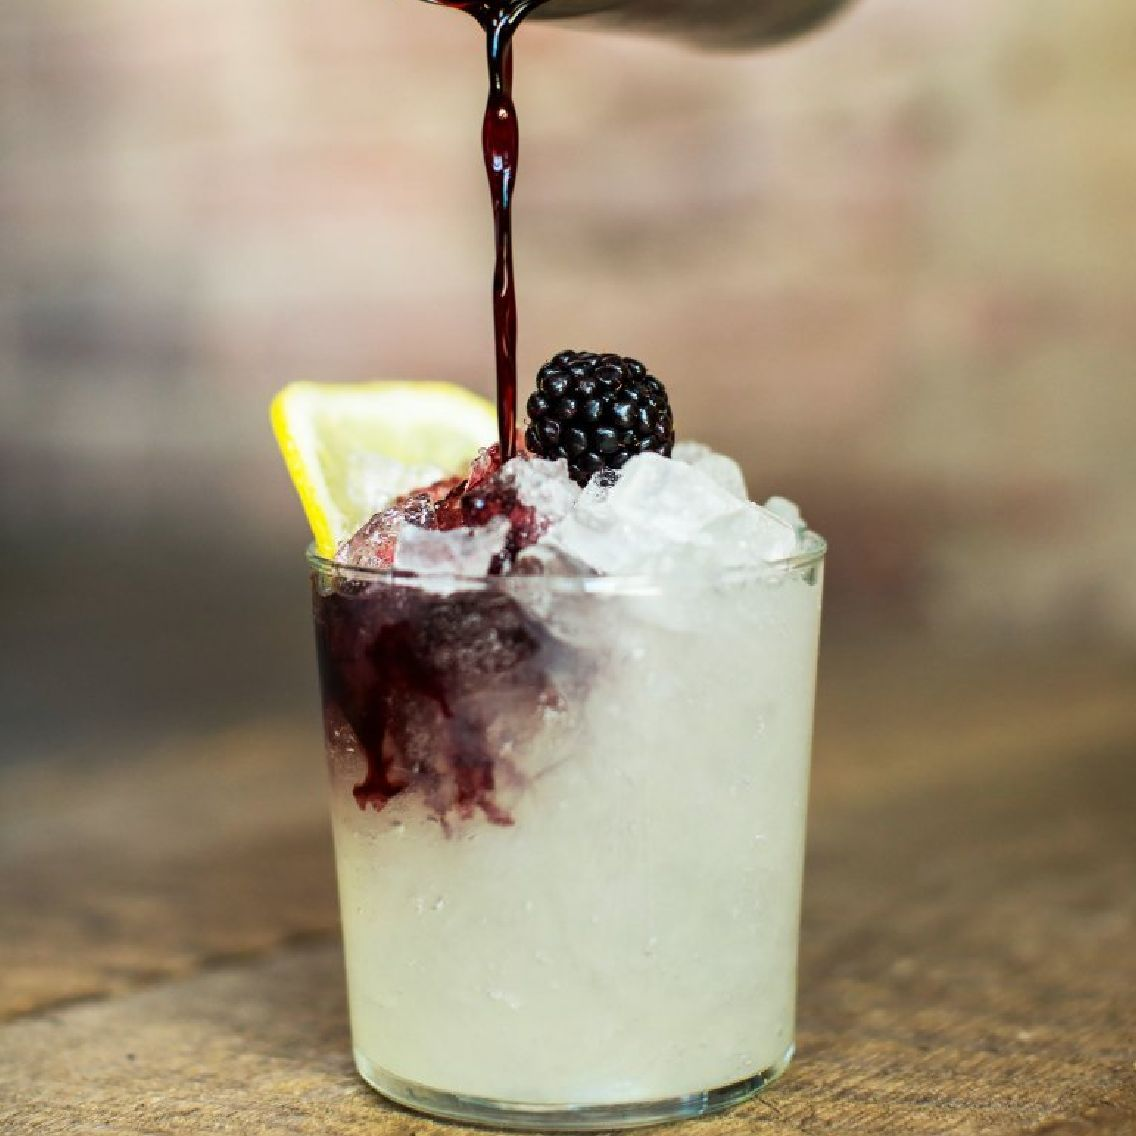 """The drink that saved gin and cocktails.  Legendary London bartender Dick Bradsell created the Bramble whilst working at Fred's Bar in London's Soho in the 1980s. A well-balanced combination of dry gin, lemon, and crème de mûre, the Bramble was intended to be a quintessentially British cocktail inspired by British avours. It rapidly became the go-to gin drink in many bartenders' repertoire and arguably propelled gin cocktails back into the limelight.  Perhaps the only true""""modern classic""""cocktail, Dick realised it had nally ascended to the highest of cocktail heights when famously a French bartender argued with him across the bar and refused to believe that he had invented the drink.  """"You always have to try and achieve perfection in bartending, it doesn't just happen; you have to make the effort."""" – Dick Bradsell, 2003."""